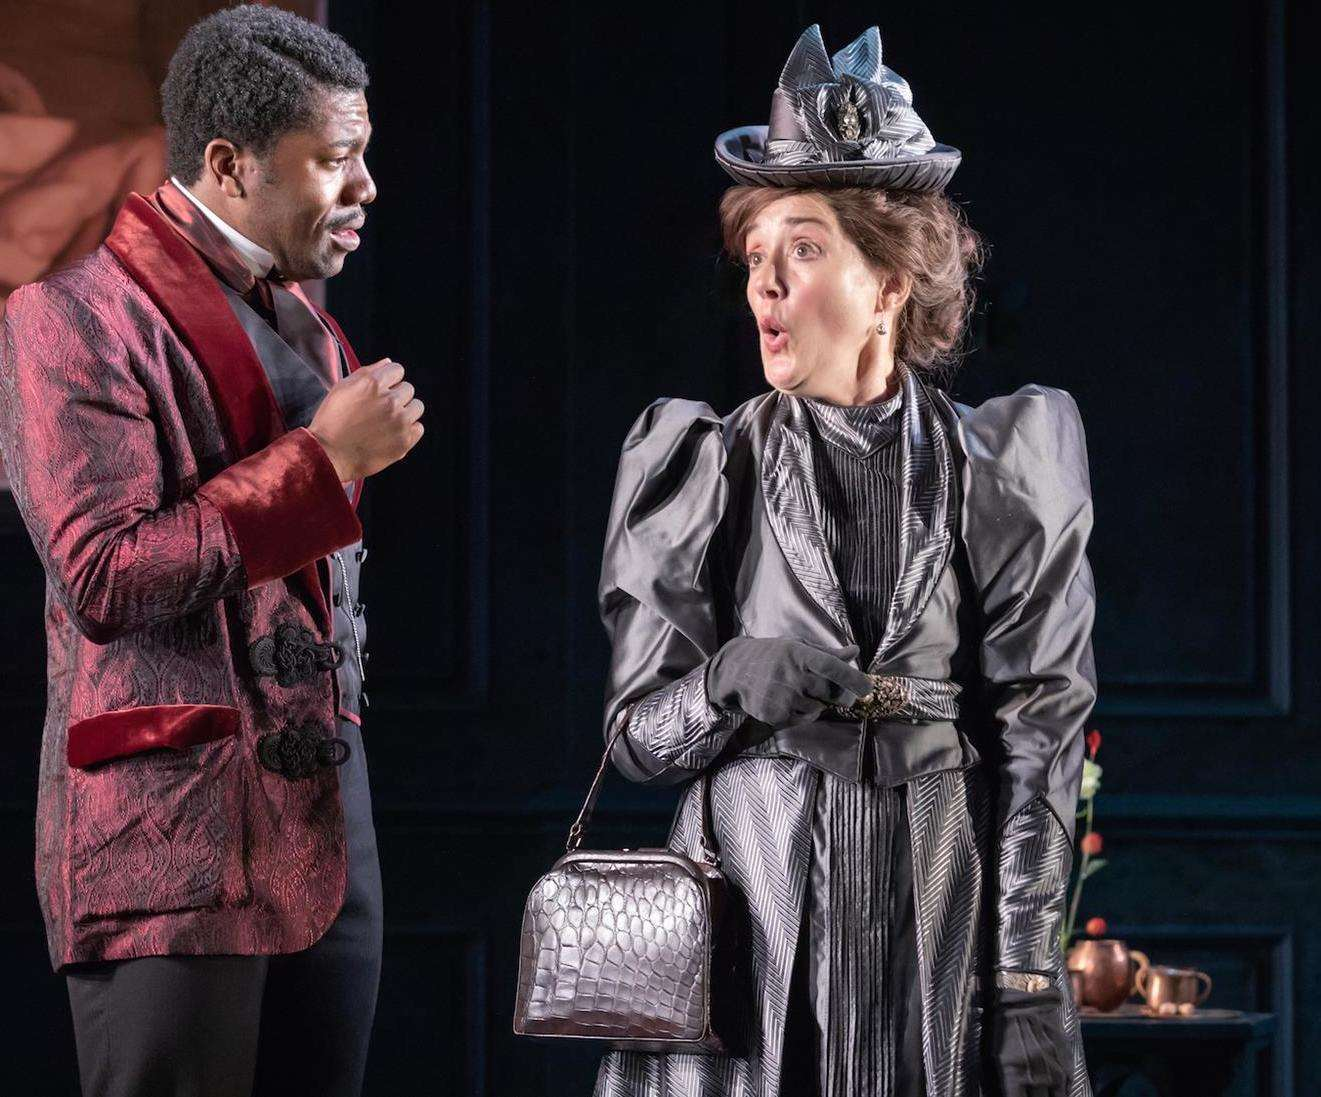 Sophie Thompson (Lady Bracknell) and Fehinti Balogun (Algernon Moncrieff) in a scene from The Importance of Being Earnest. Photo supplied. (4724537)